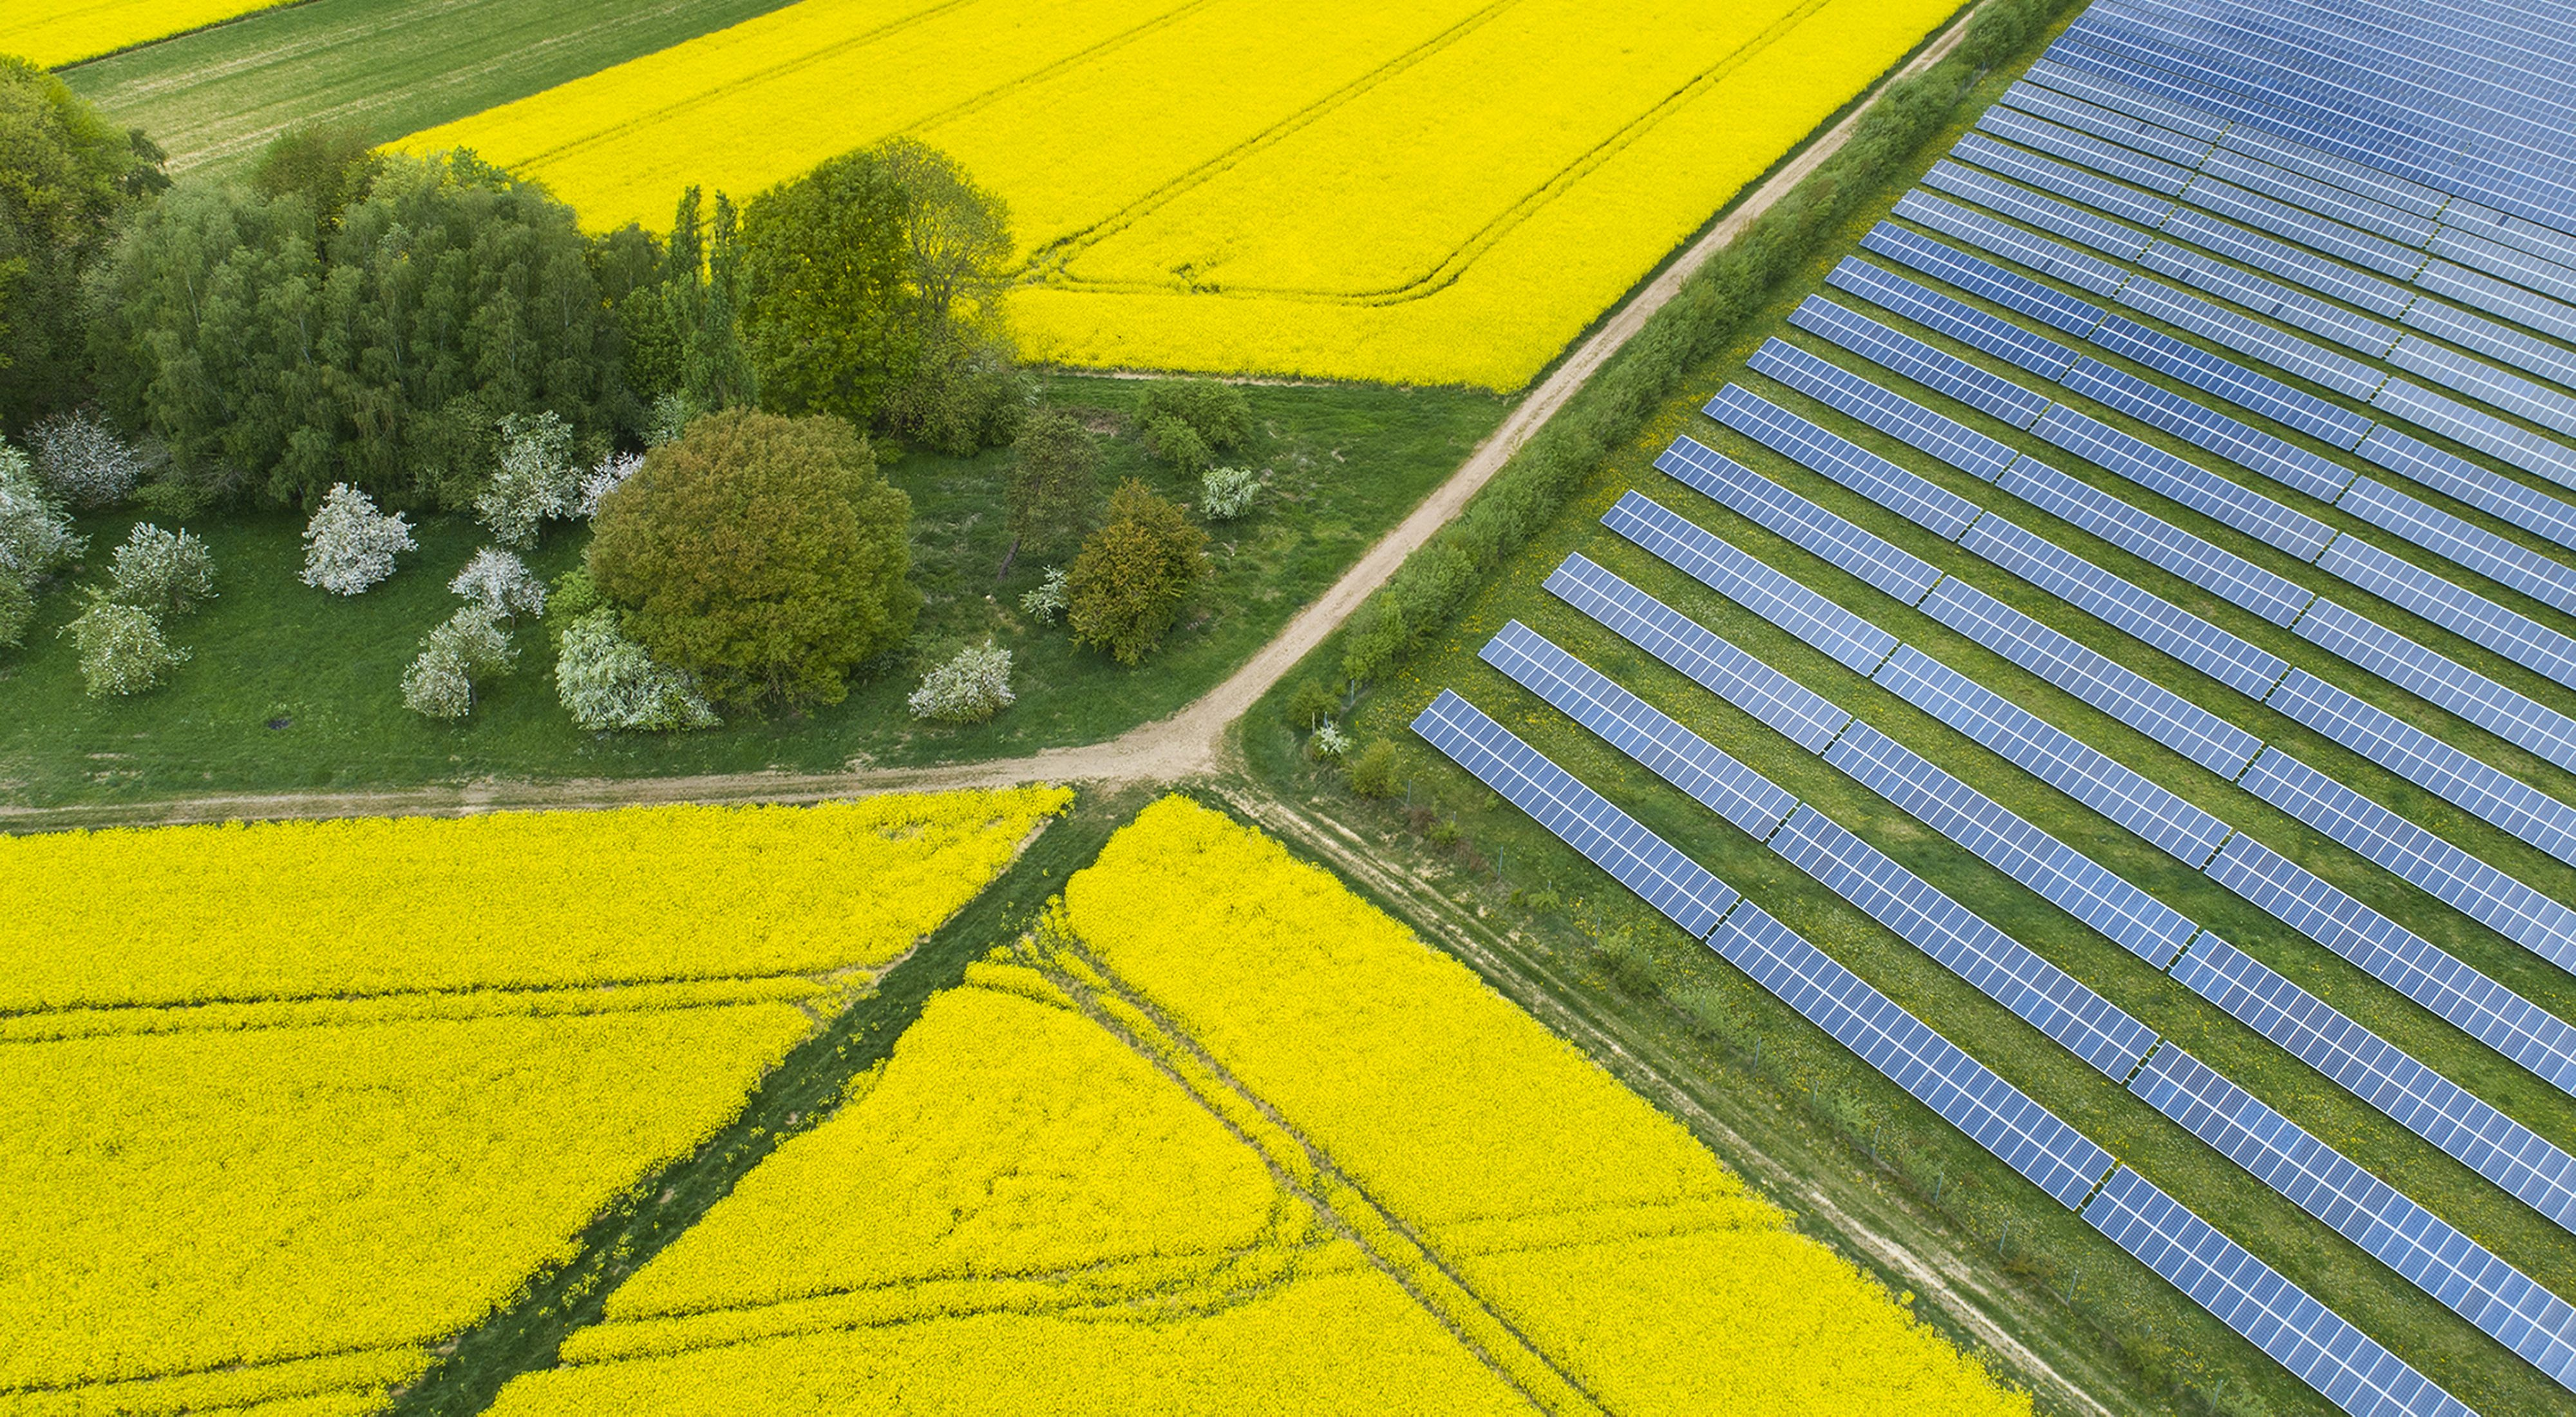 a field of solar panels adjacent to farm fields of yellow blooming canola